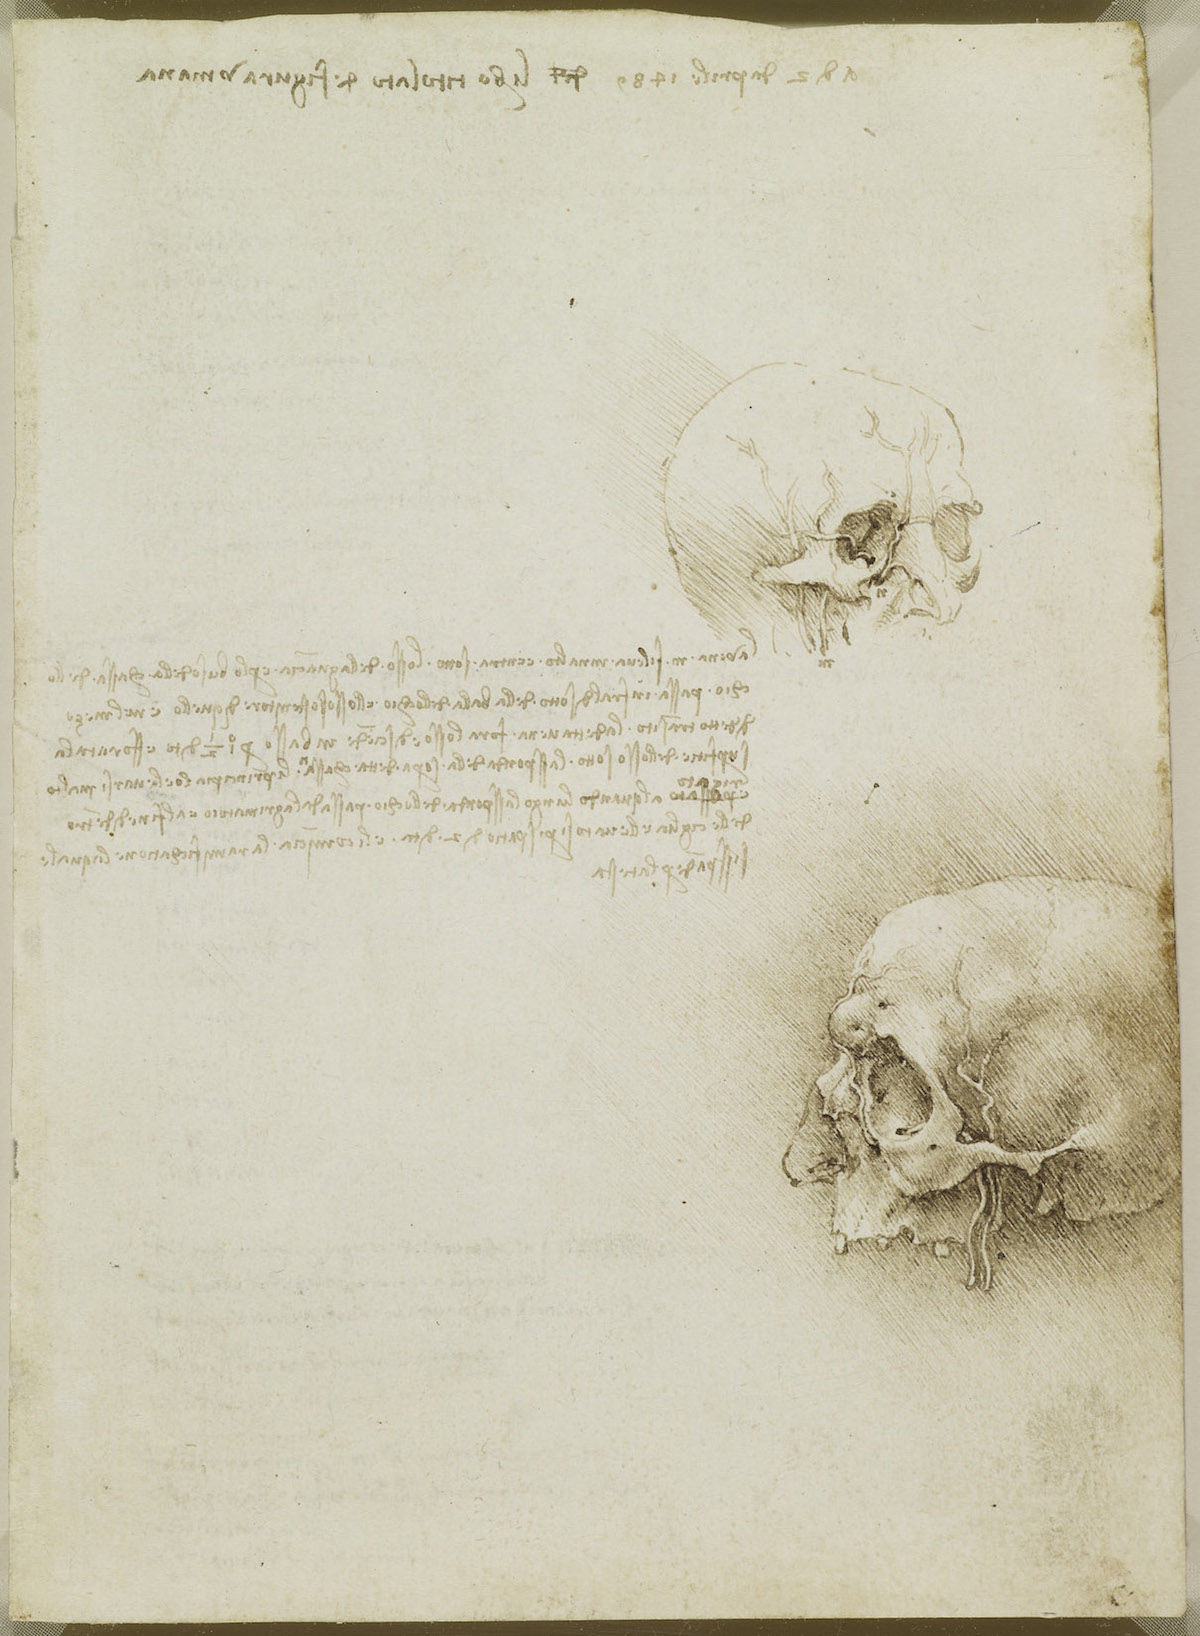 The cranium sectioned. Verso: The skull sectioned 1489